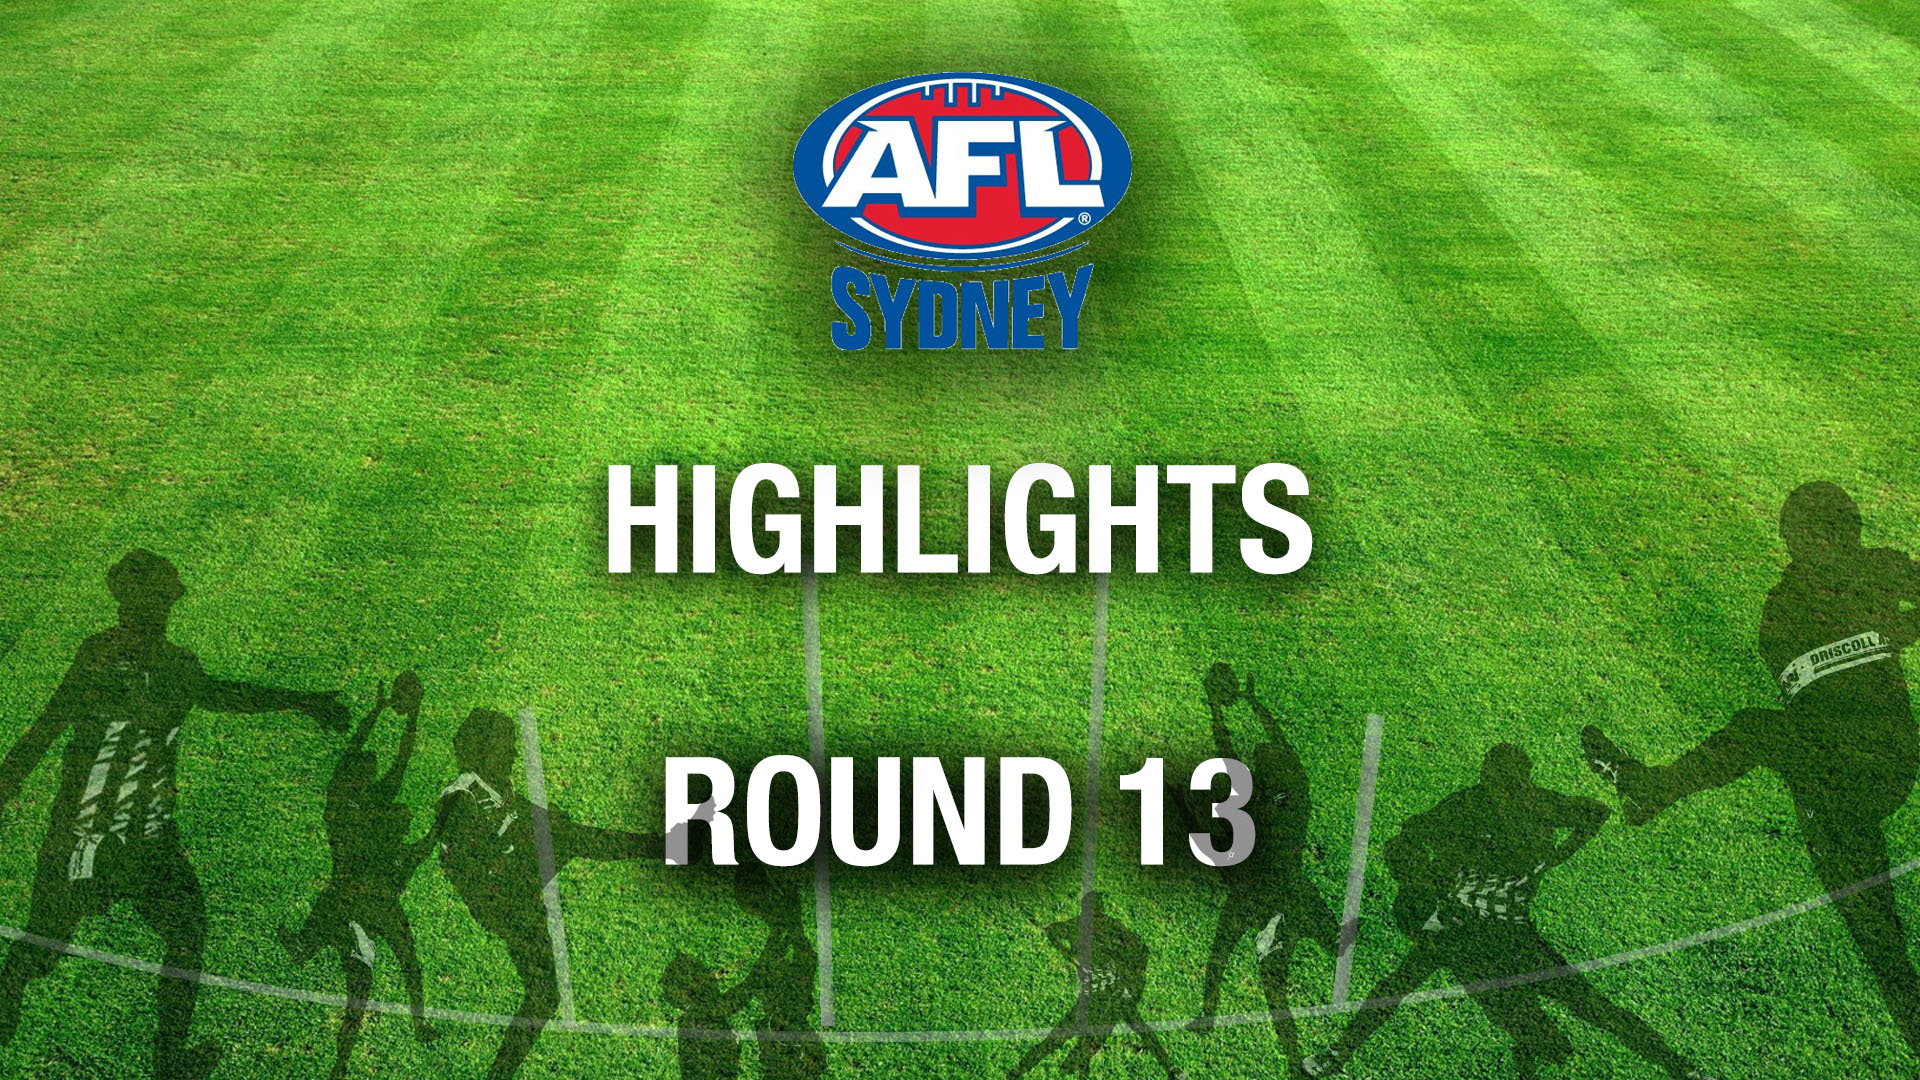 AFL SYDNEY 2018 RD13 HIGHLIGHTS